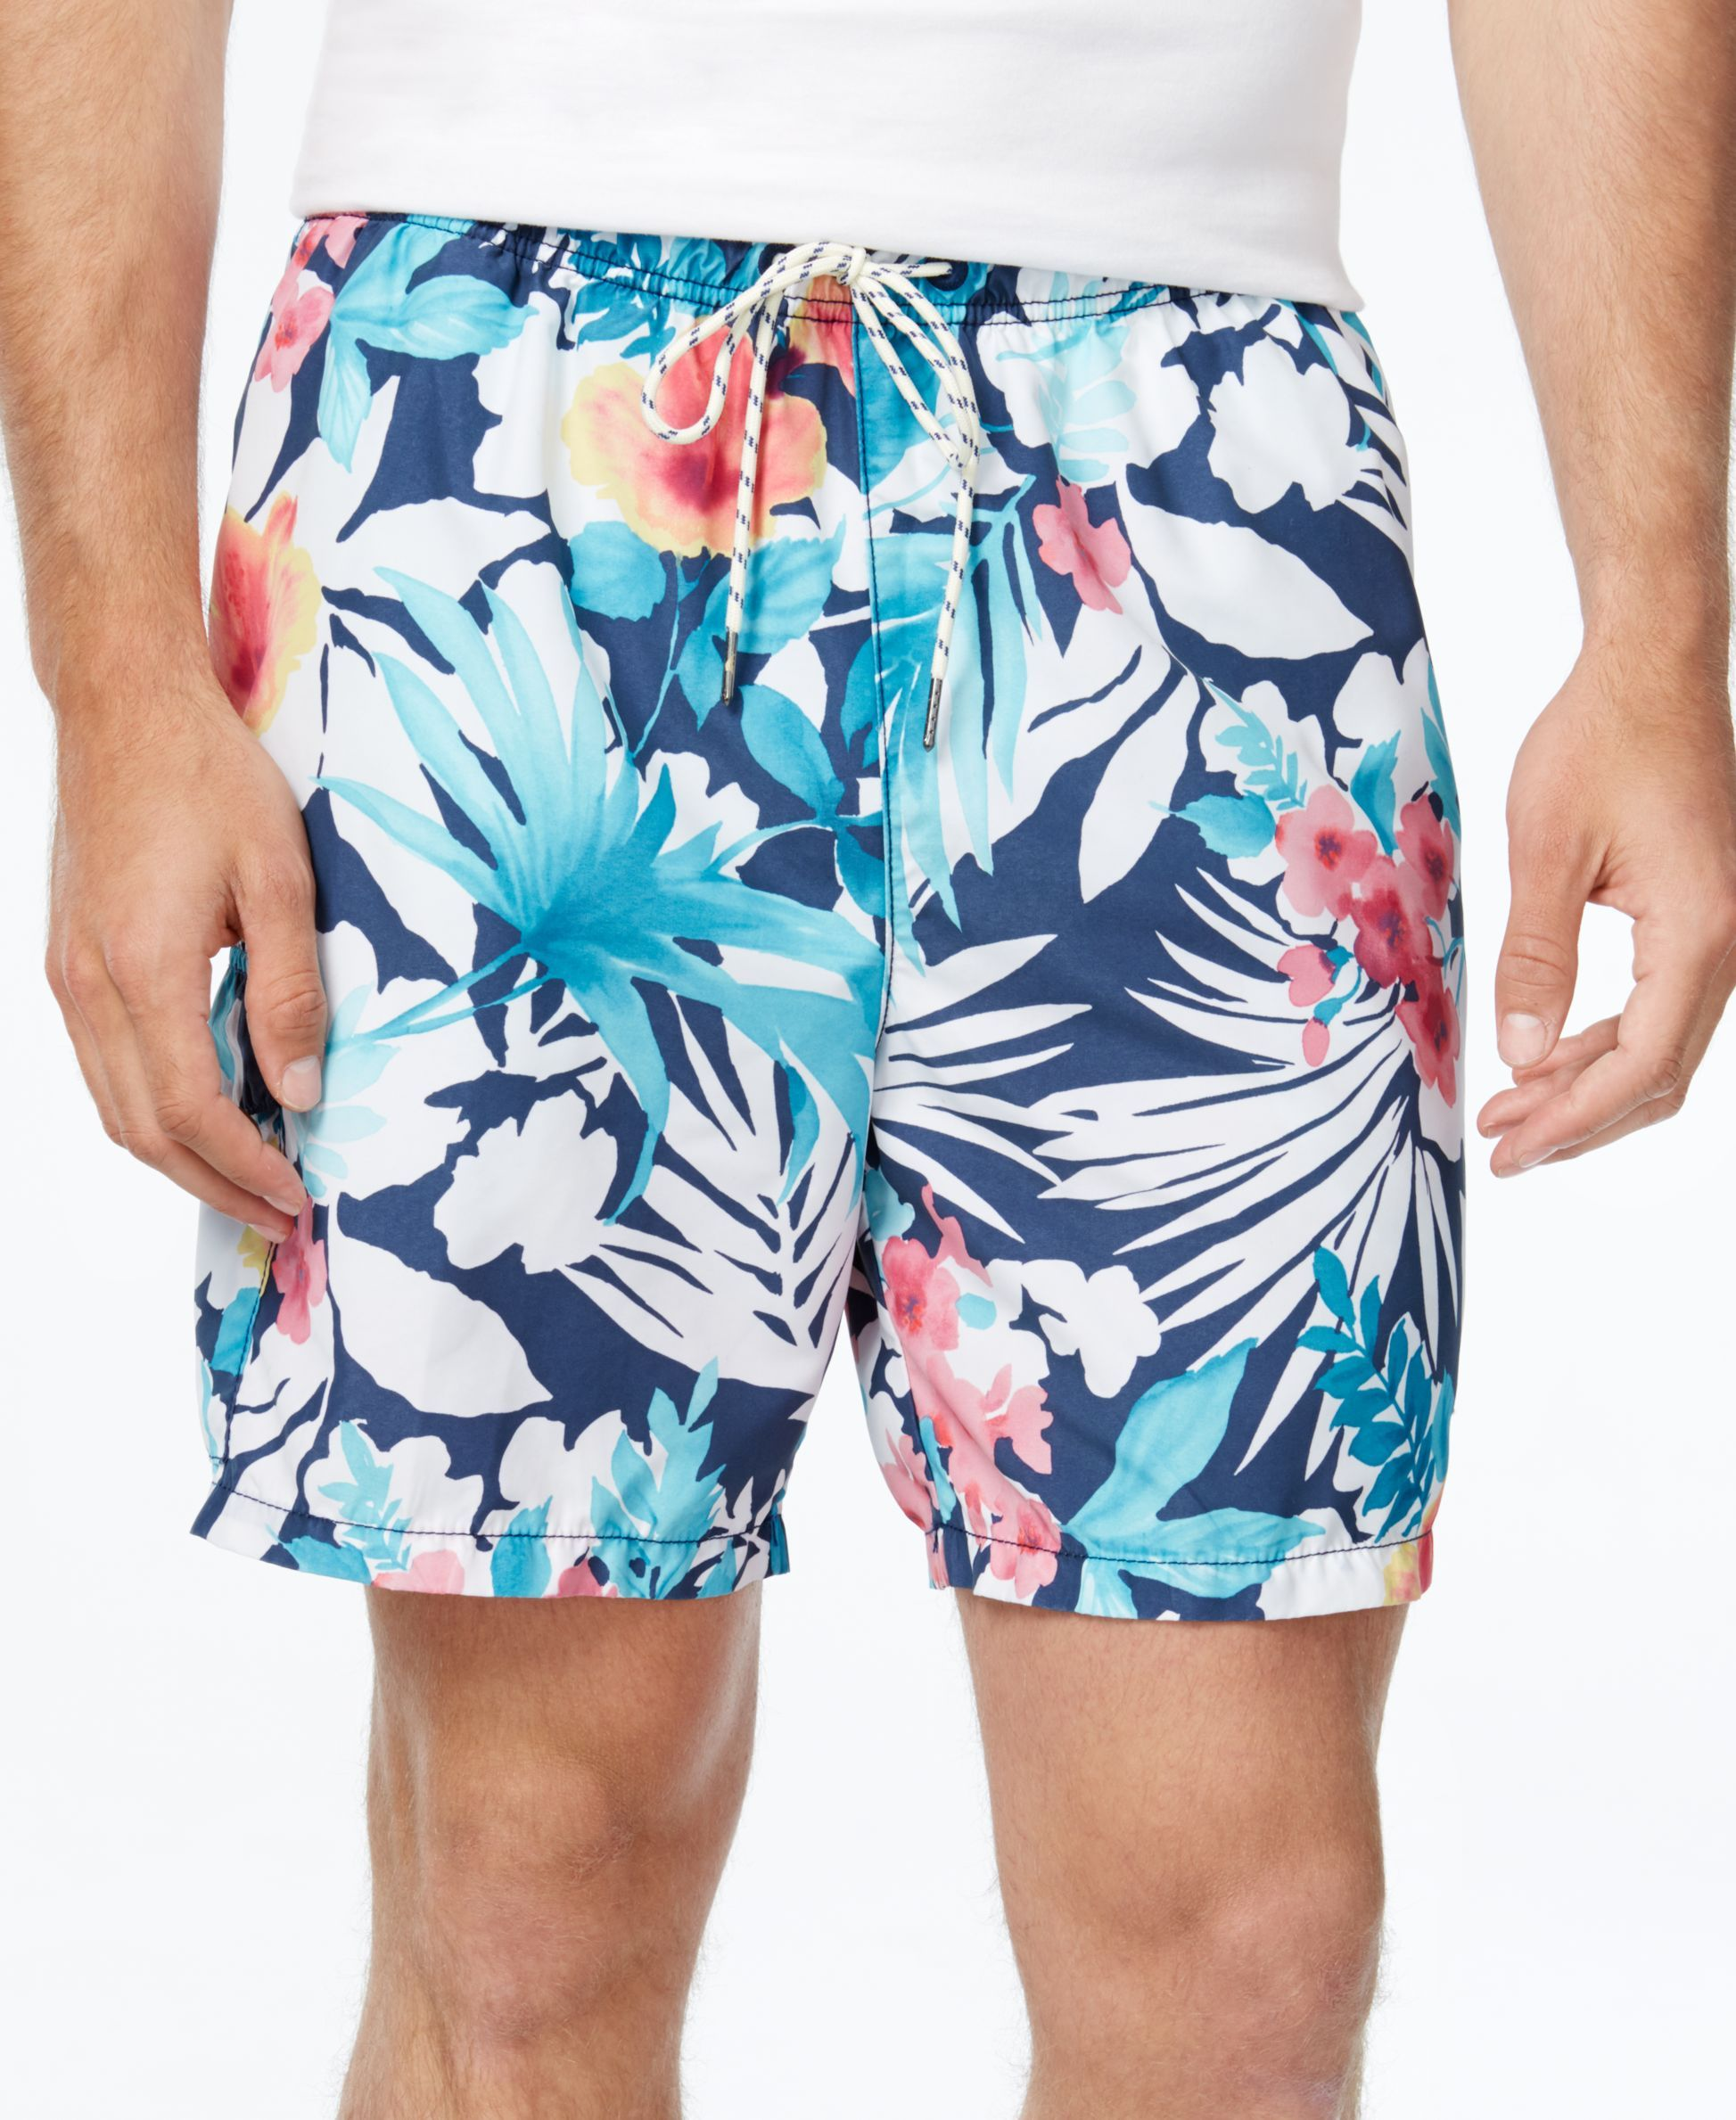 Bring your beach-ready look to life with the comfortable fit and vivid, floral print of these Naples Bastille swim shorts from Tommy Bahama. | Shell and lining: polyester | Machine washable | Imported